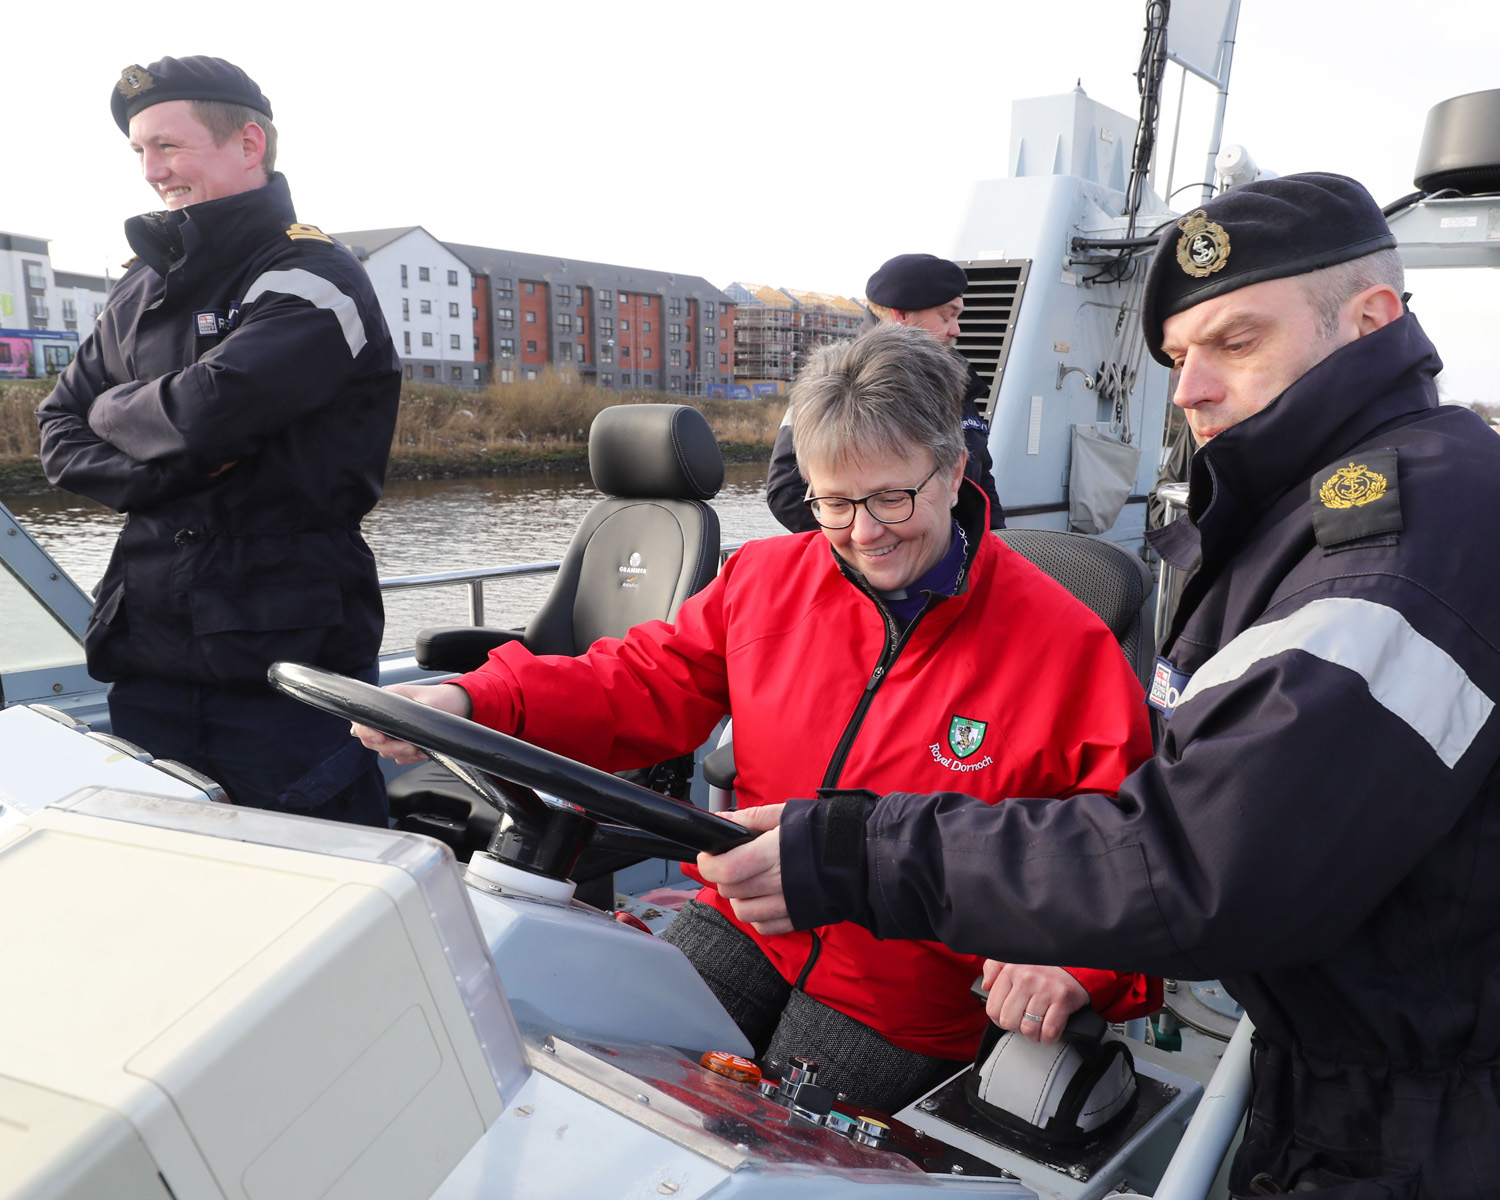 The Right Reverend Susan Brown on board Glasgow & Strathclyde University Royal Navy Unit's training boat HMS Pursuer.